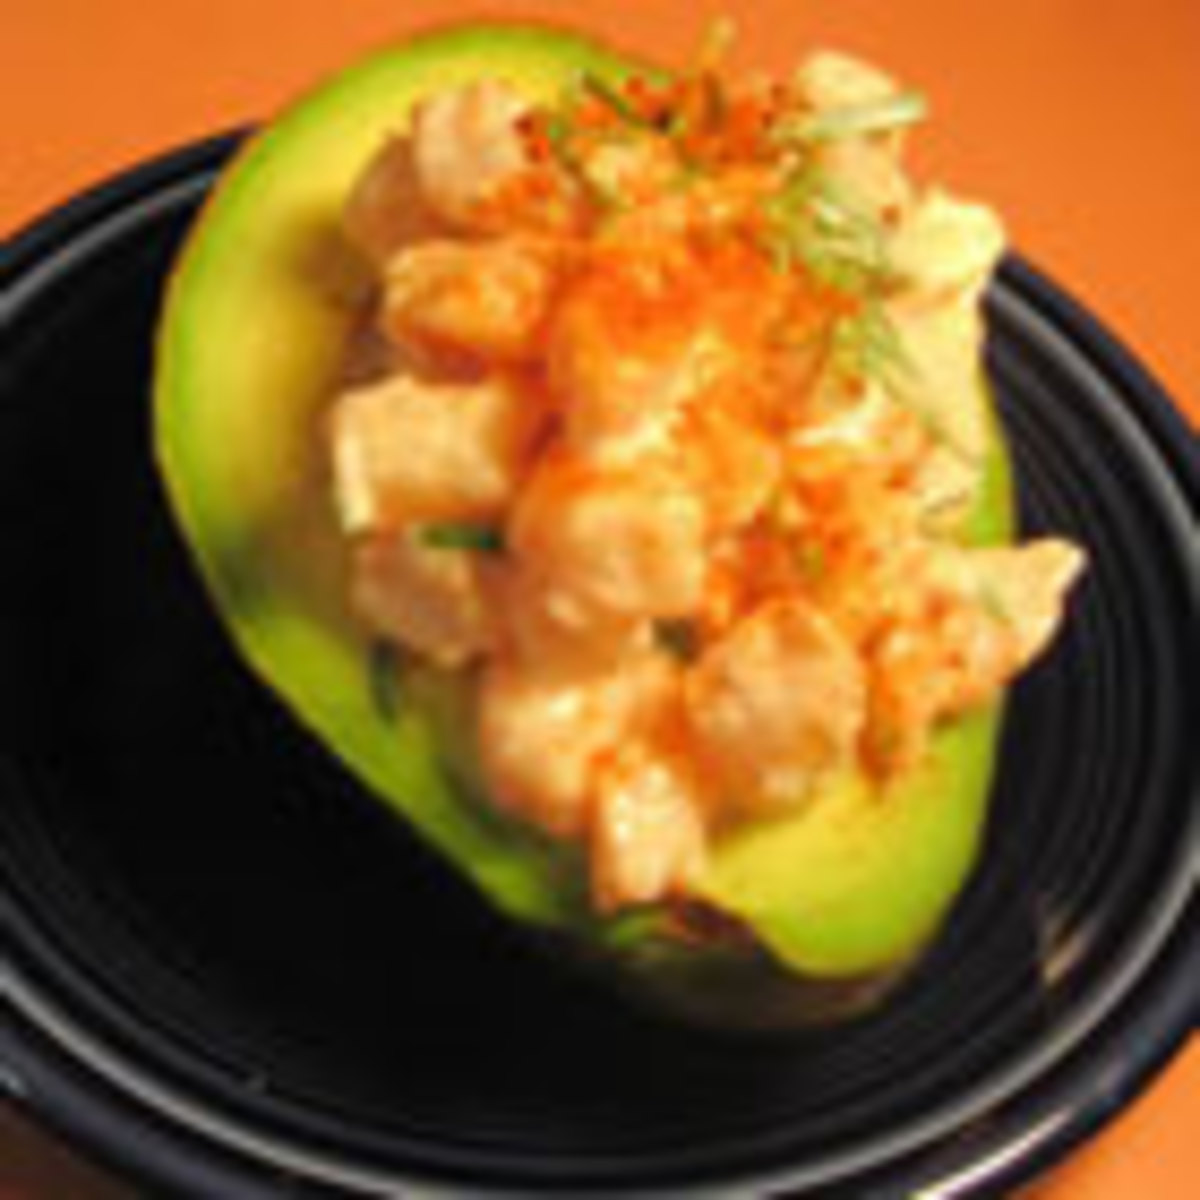 Shrimp and Avocado Salad (from Allrecipes)